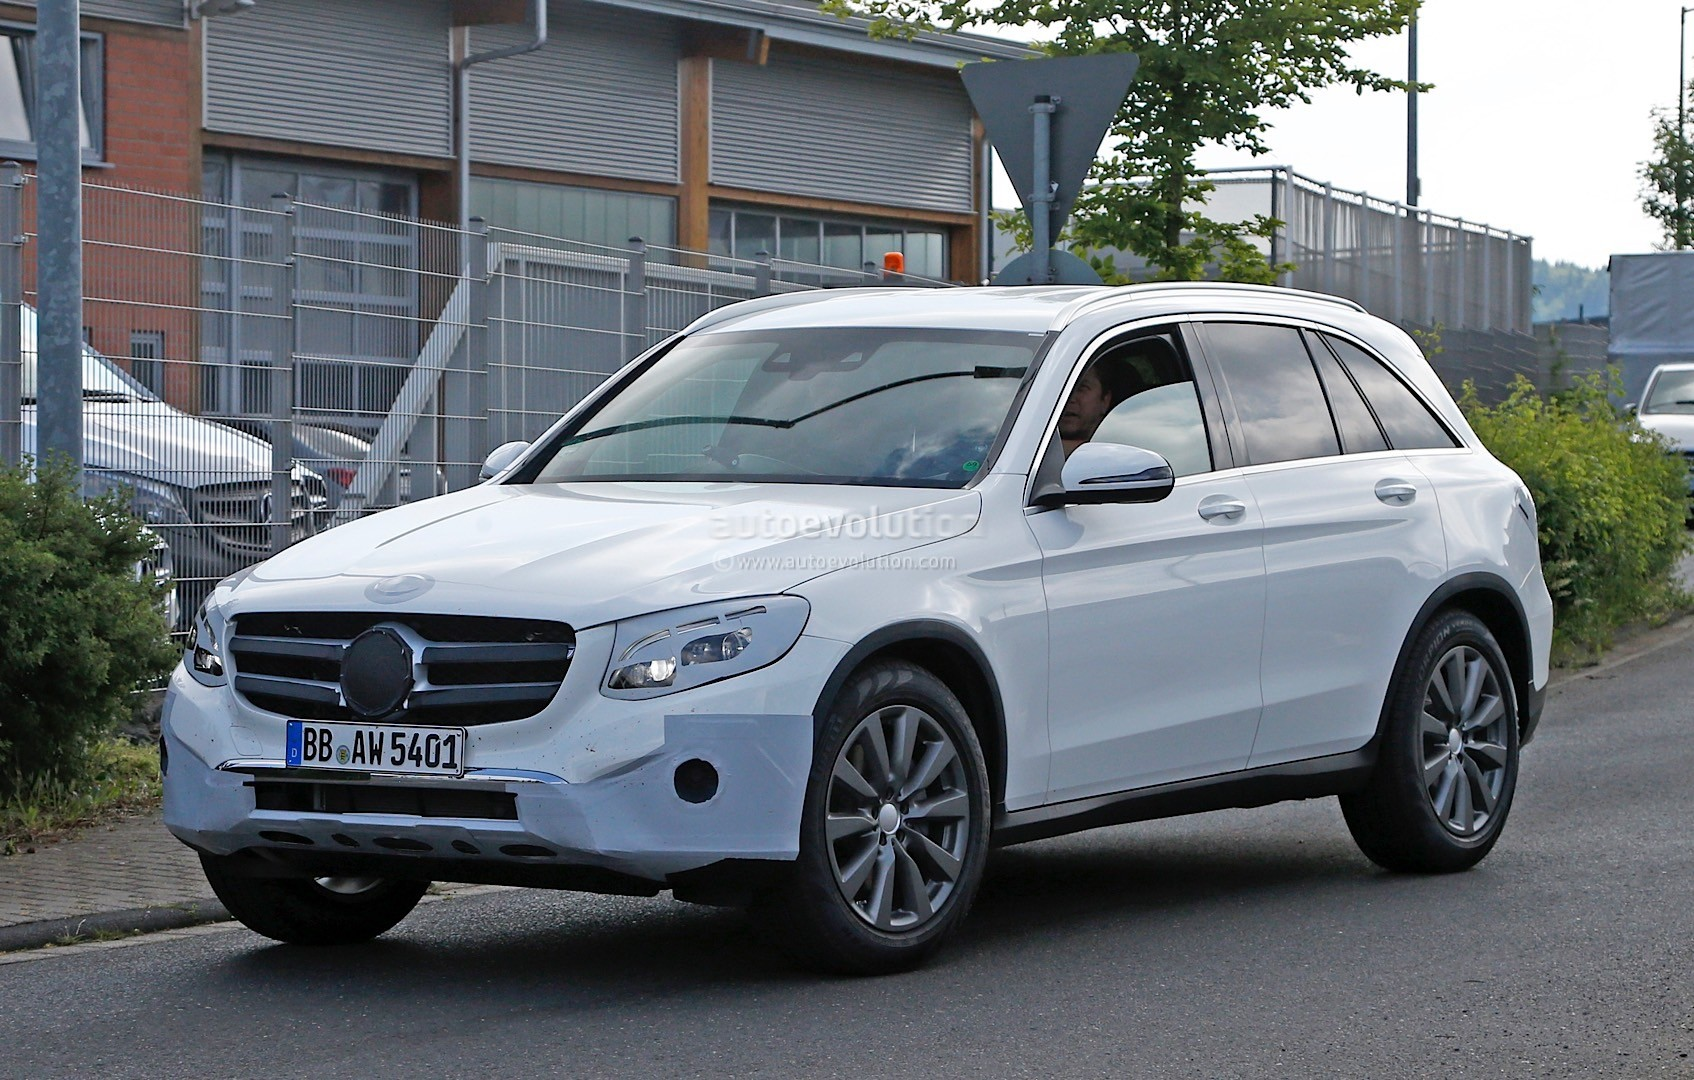 https://s1.cdn.autoevolution.com/images/news/gallery/2016-mercedes-benz-glc-spied-completely-exposed-official-debut-is-tomorrow-photo-gallery_3.jpg